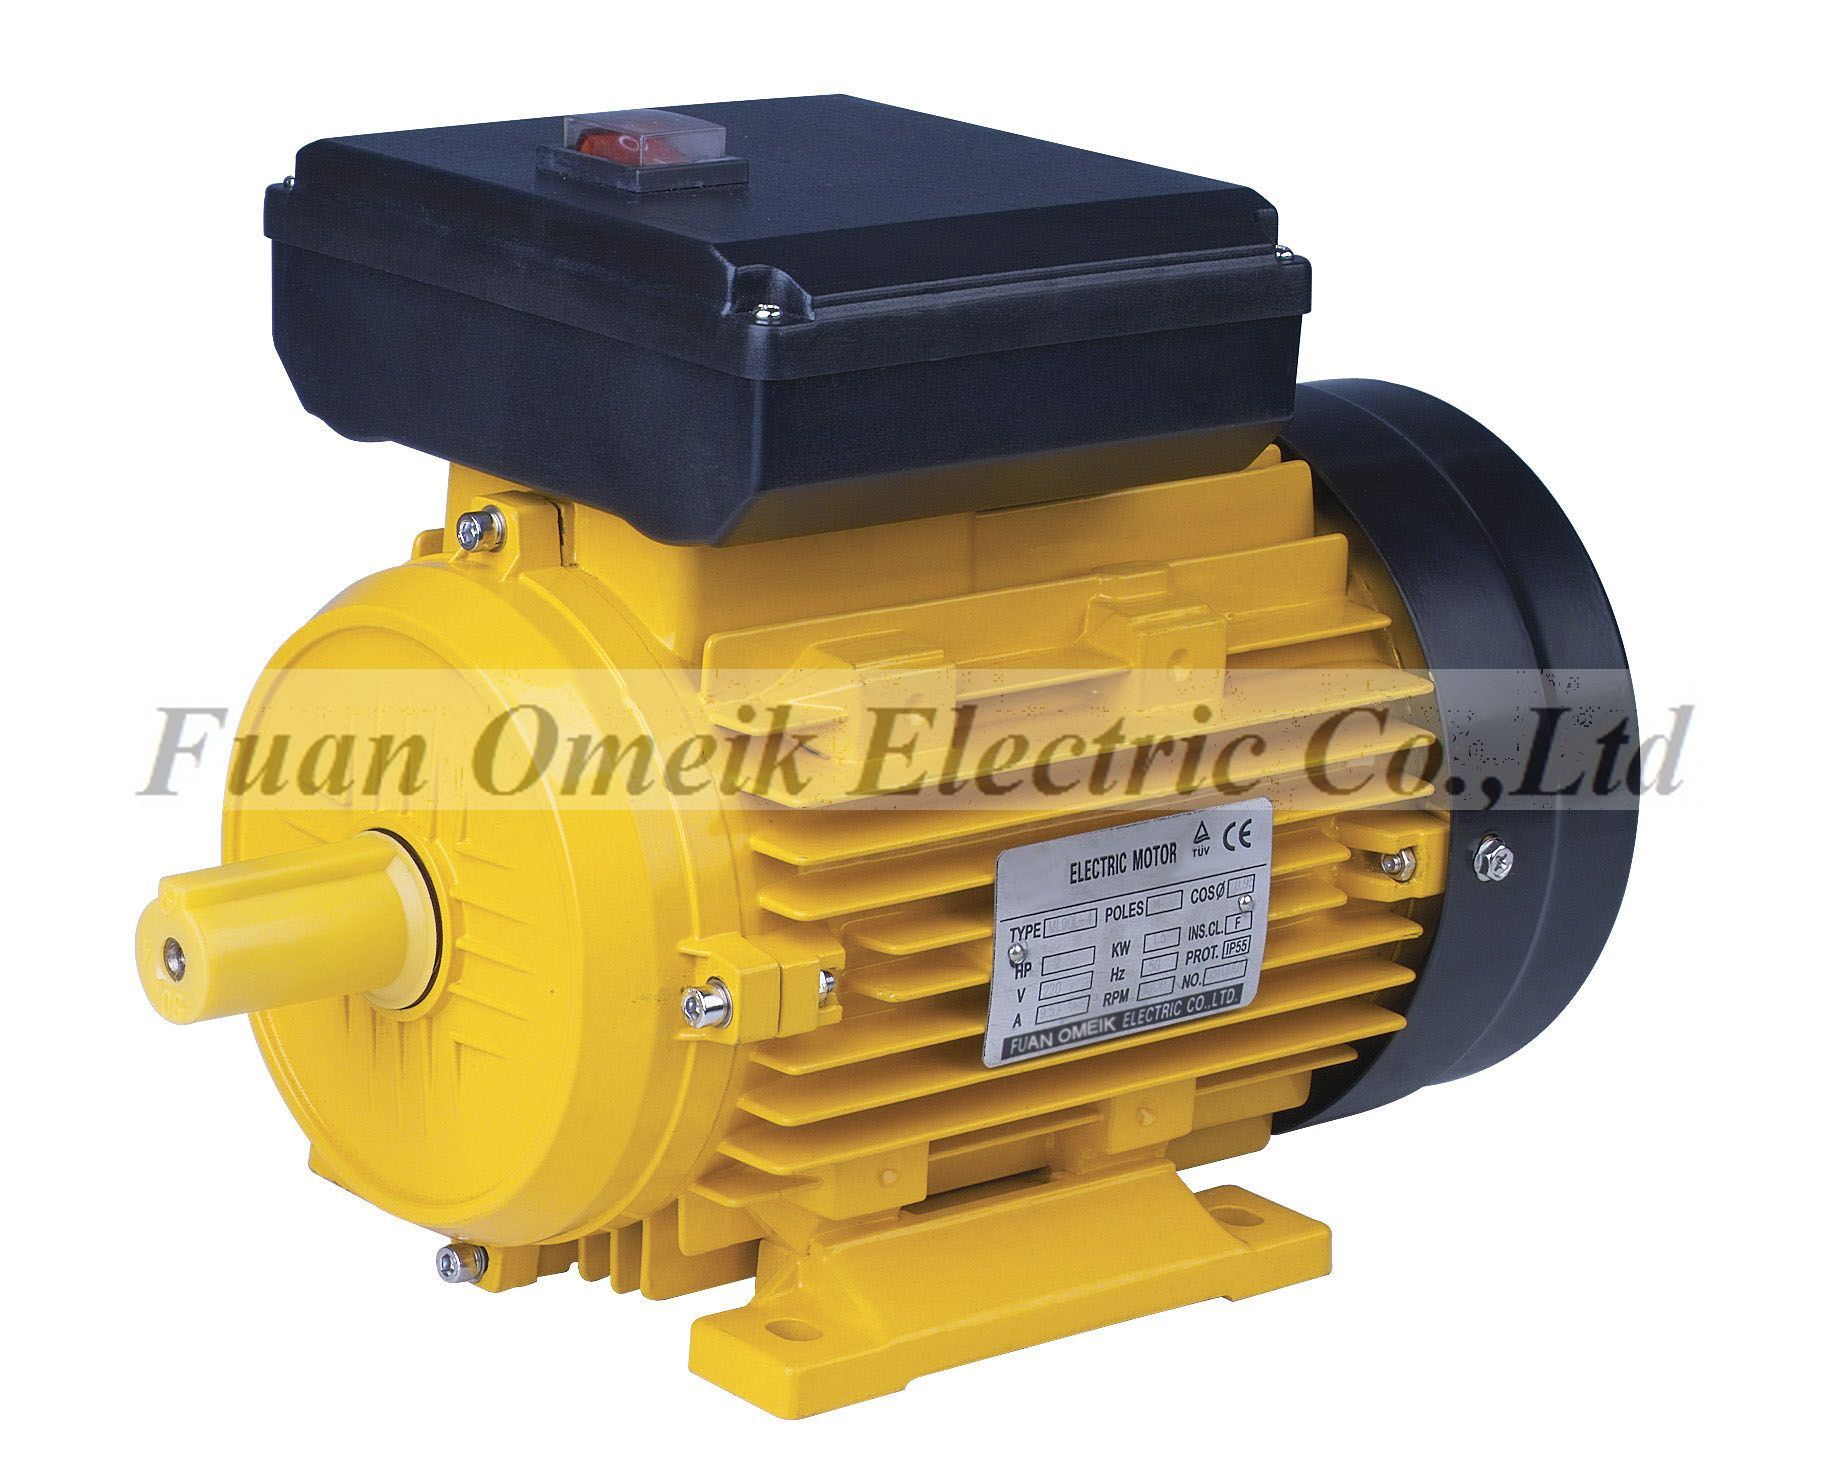 My single phase electric motor china 100 copper motor for Two phase electric motor